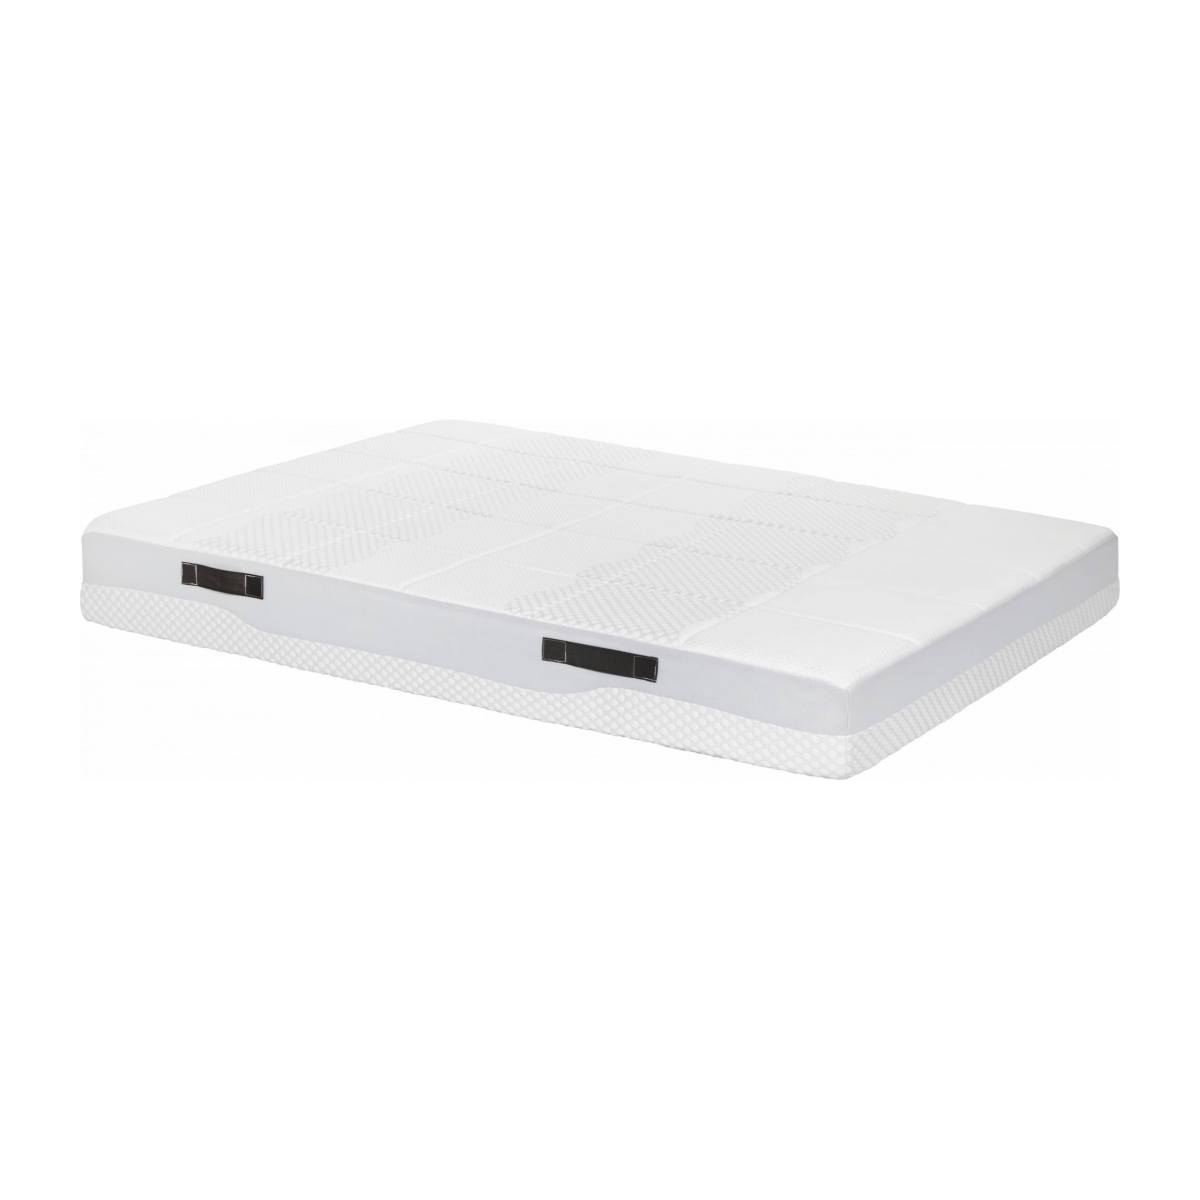 Foam mattress, width 24 cm, 180x200cm - firm support n°1